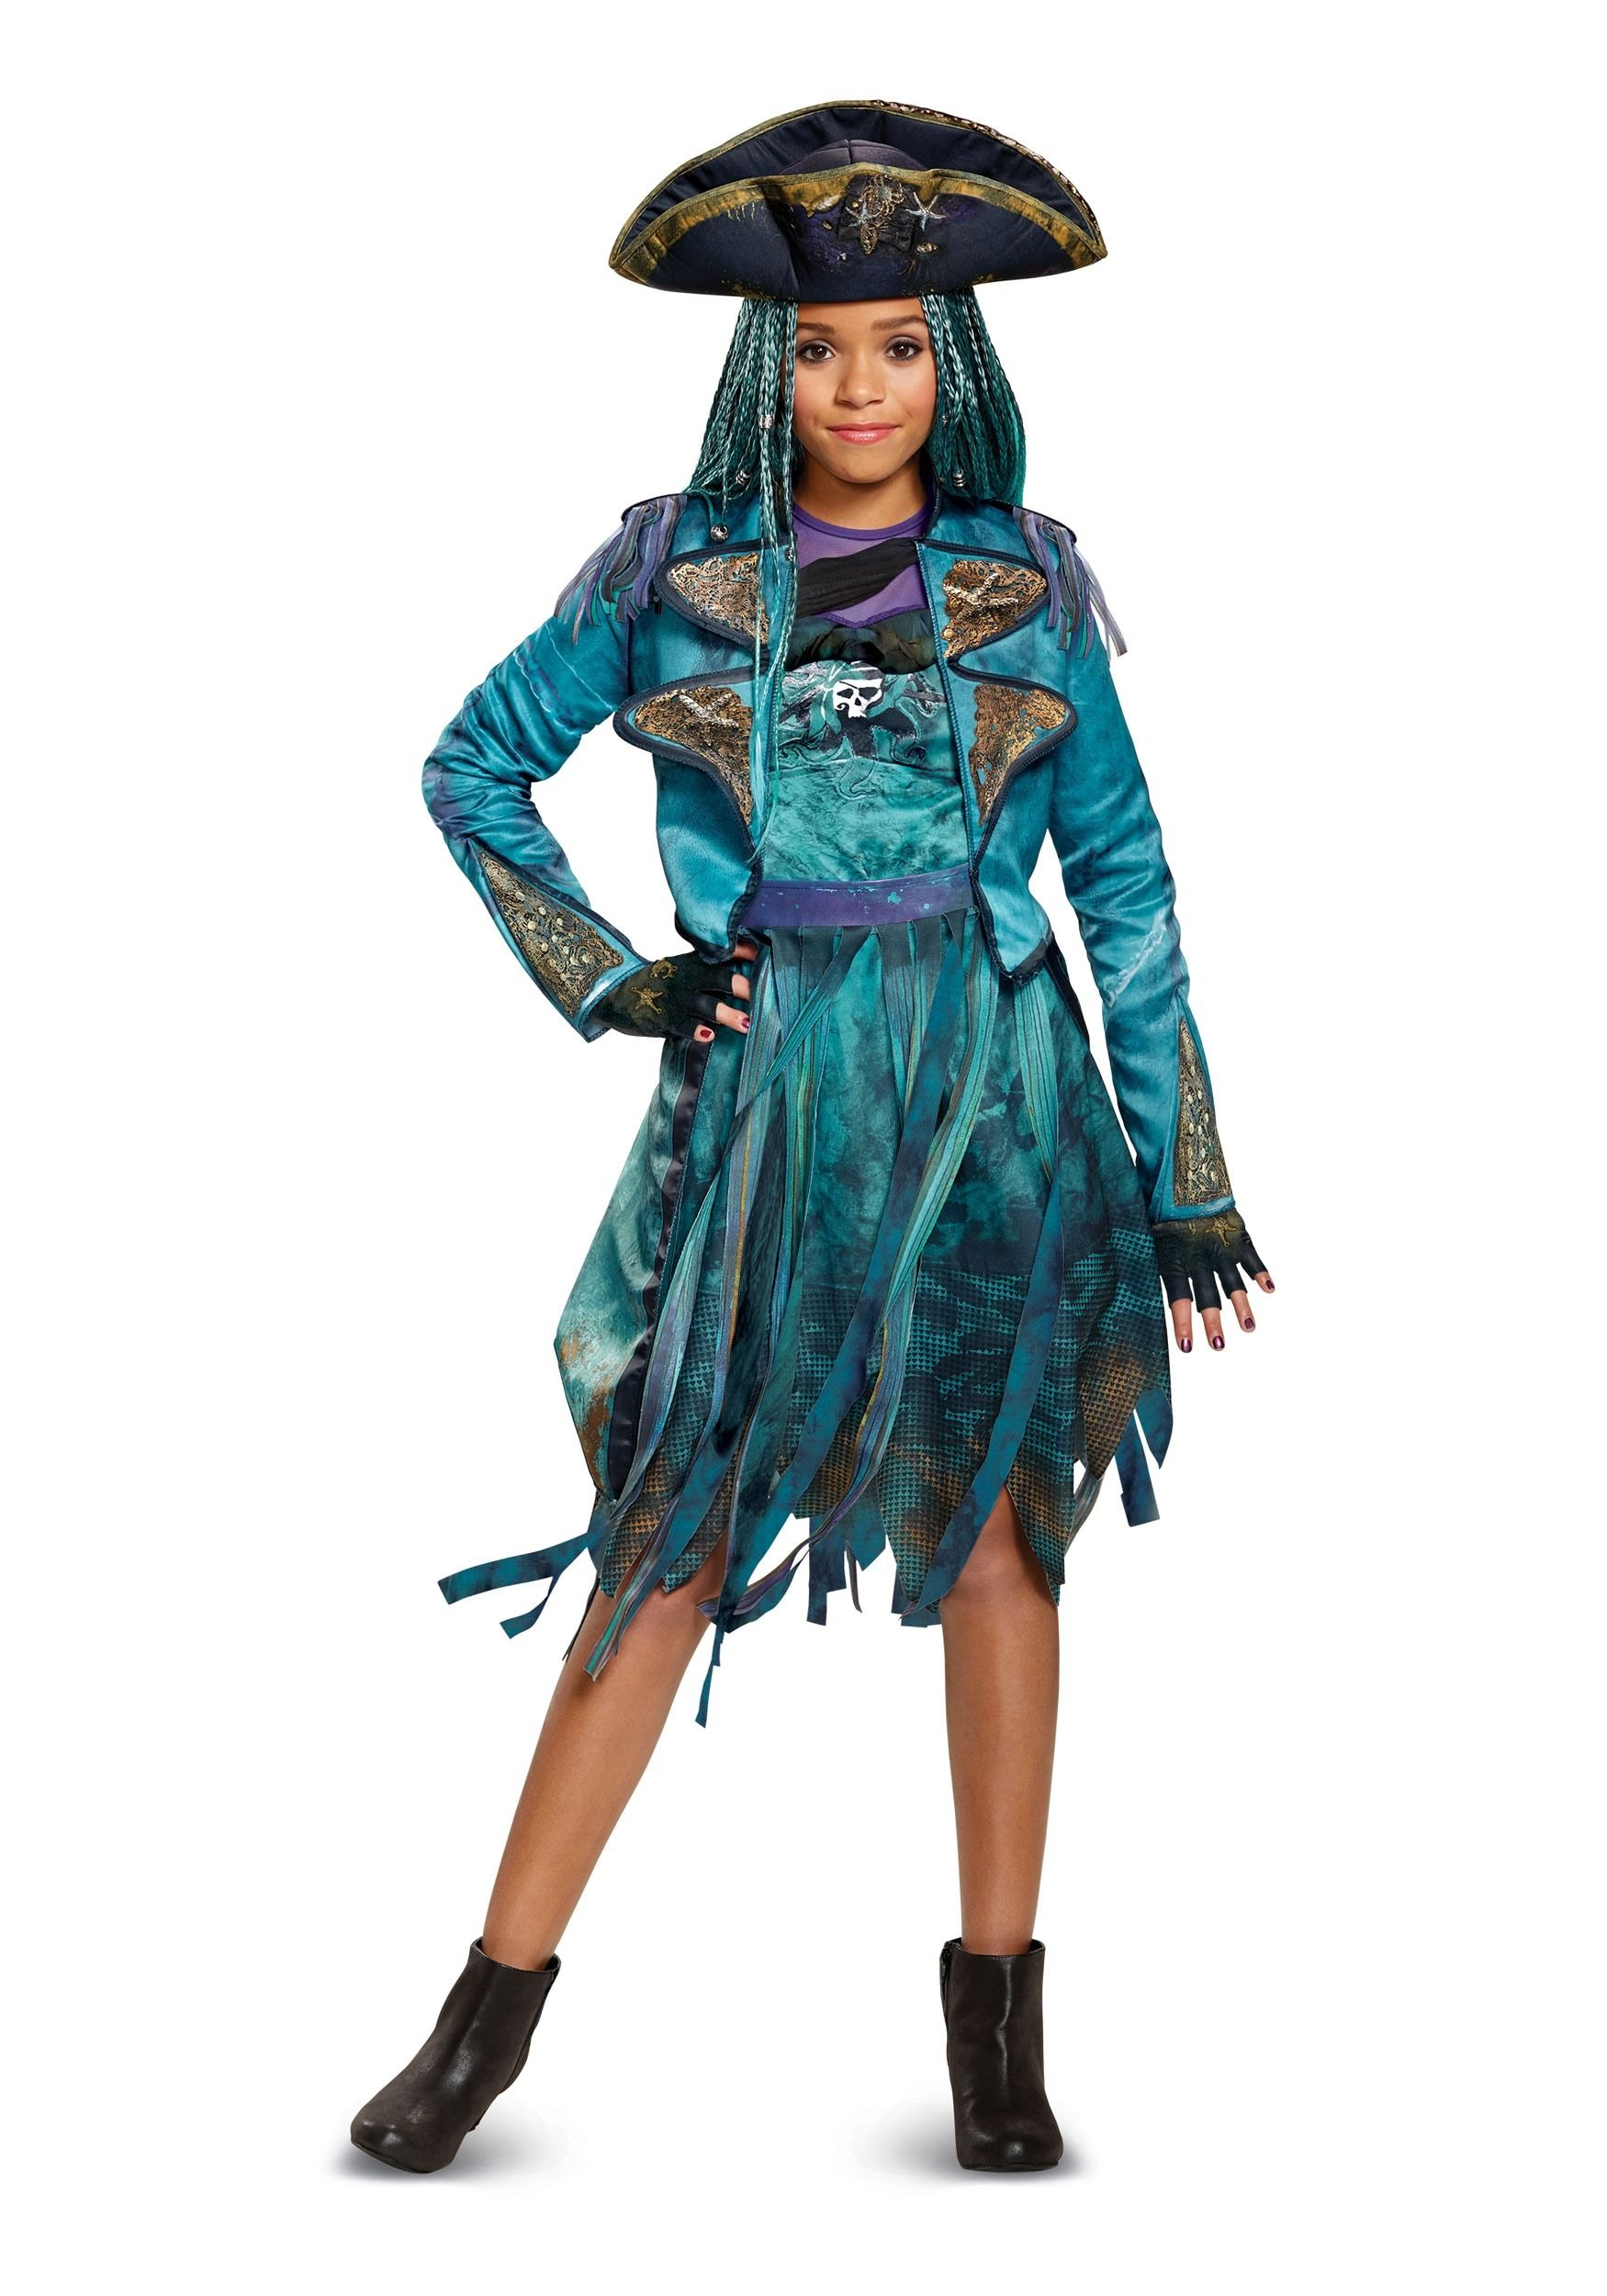 Pin By Cindy Bunch On Halloween Costume Pinterest Costumes